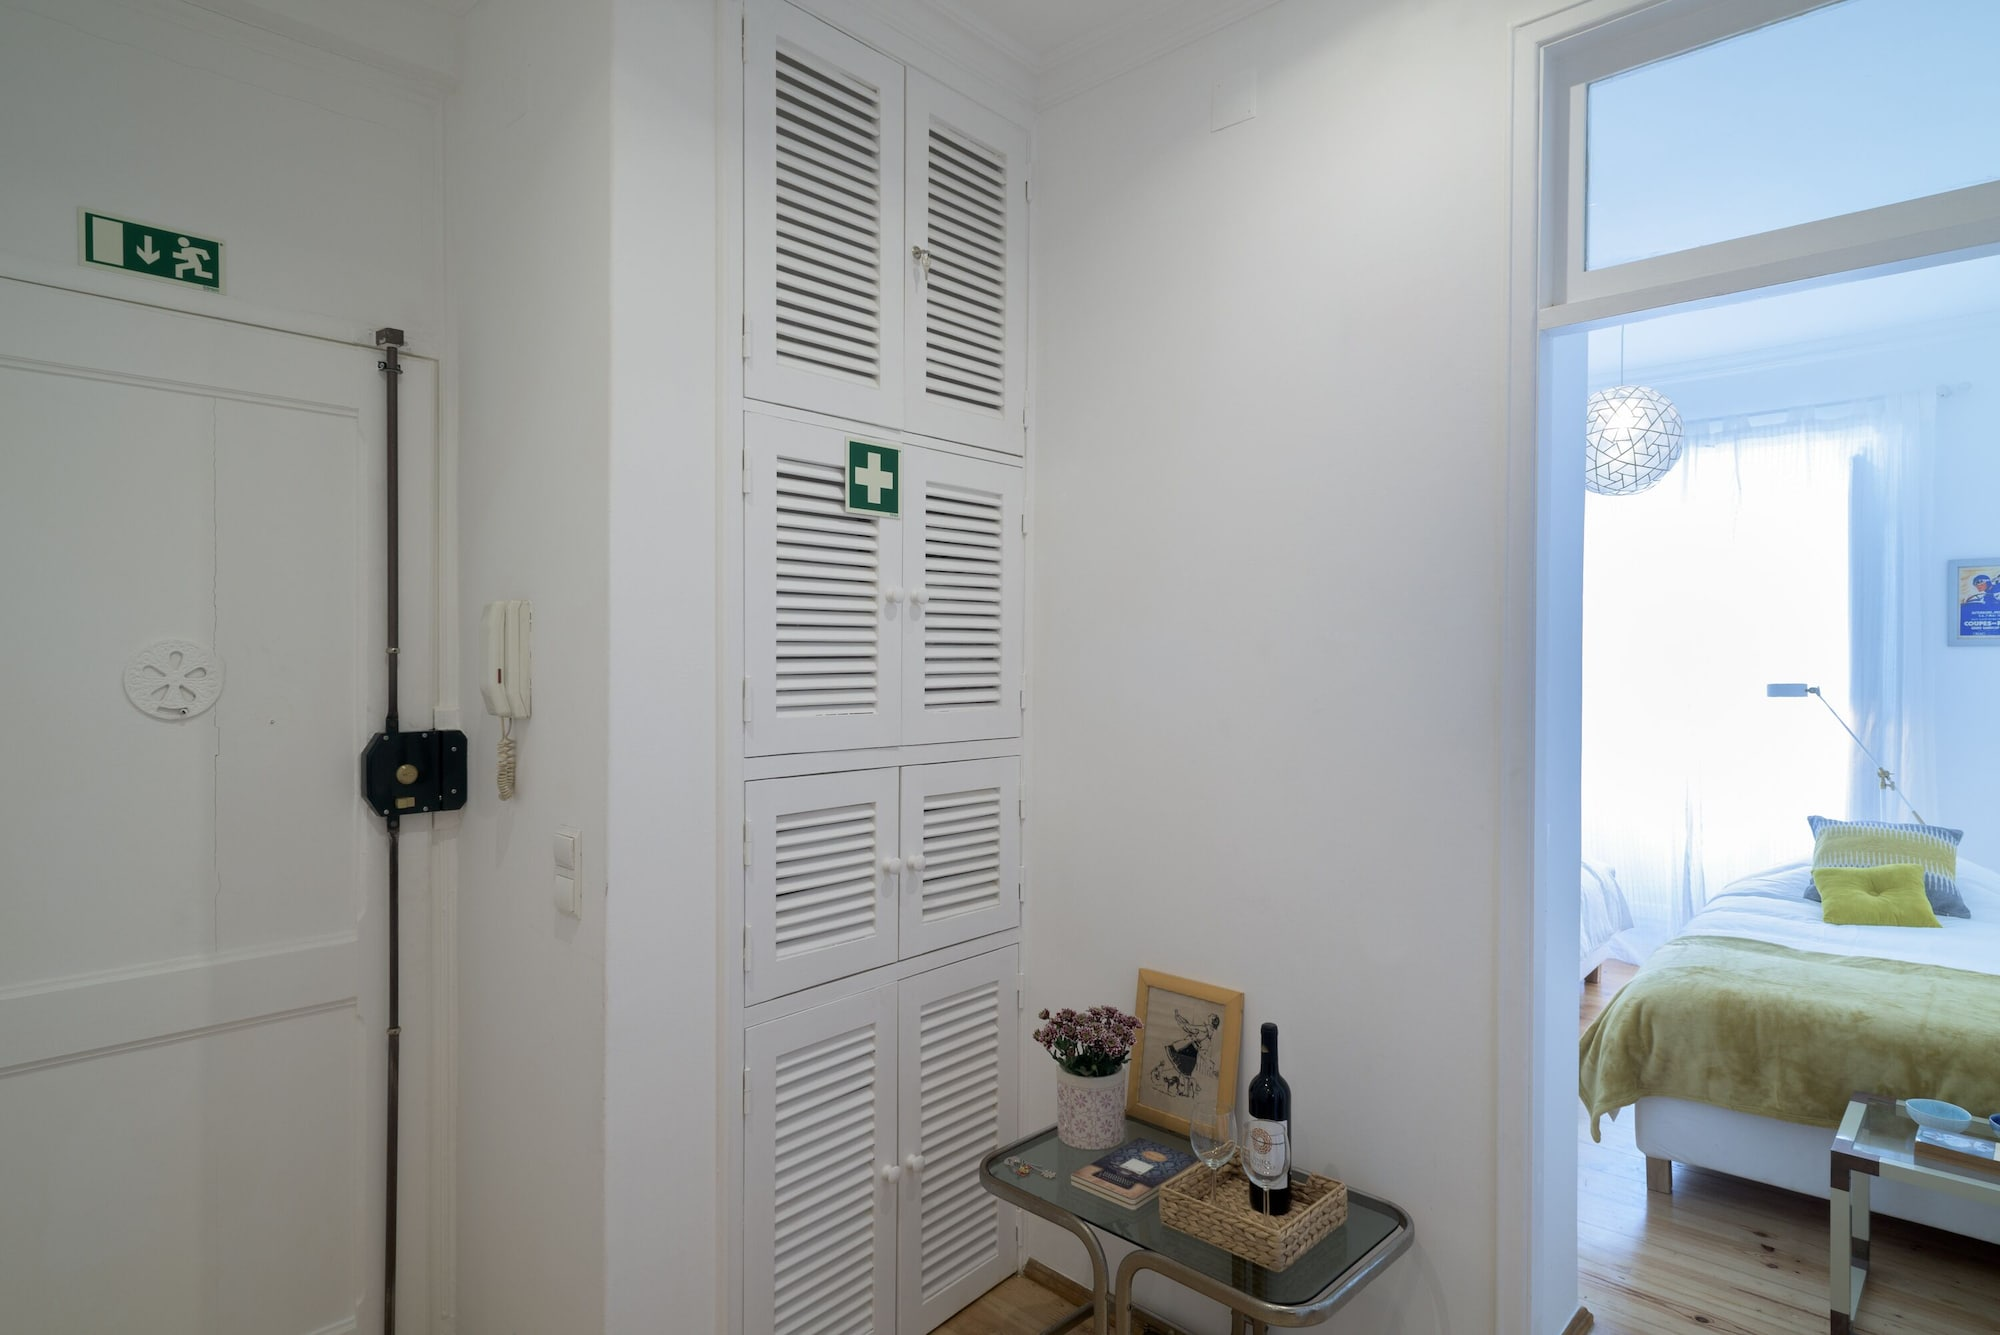 Spacious Bairro Alto Apartment + Courtyard + Free Pickup, By TimeCooler, Lisboa